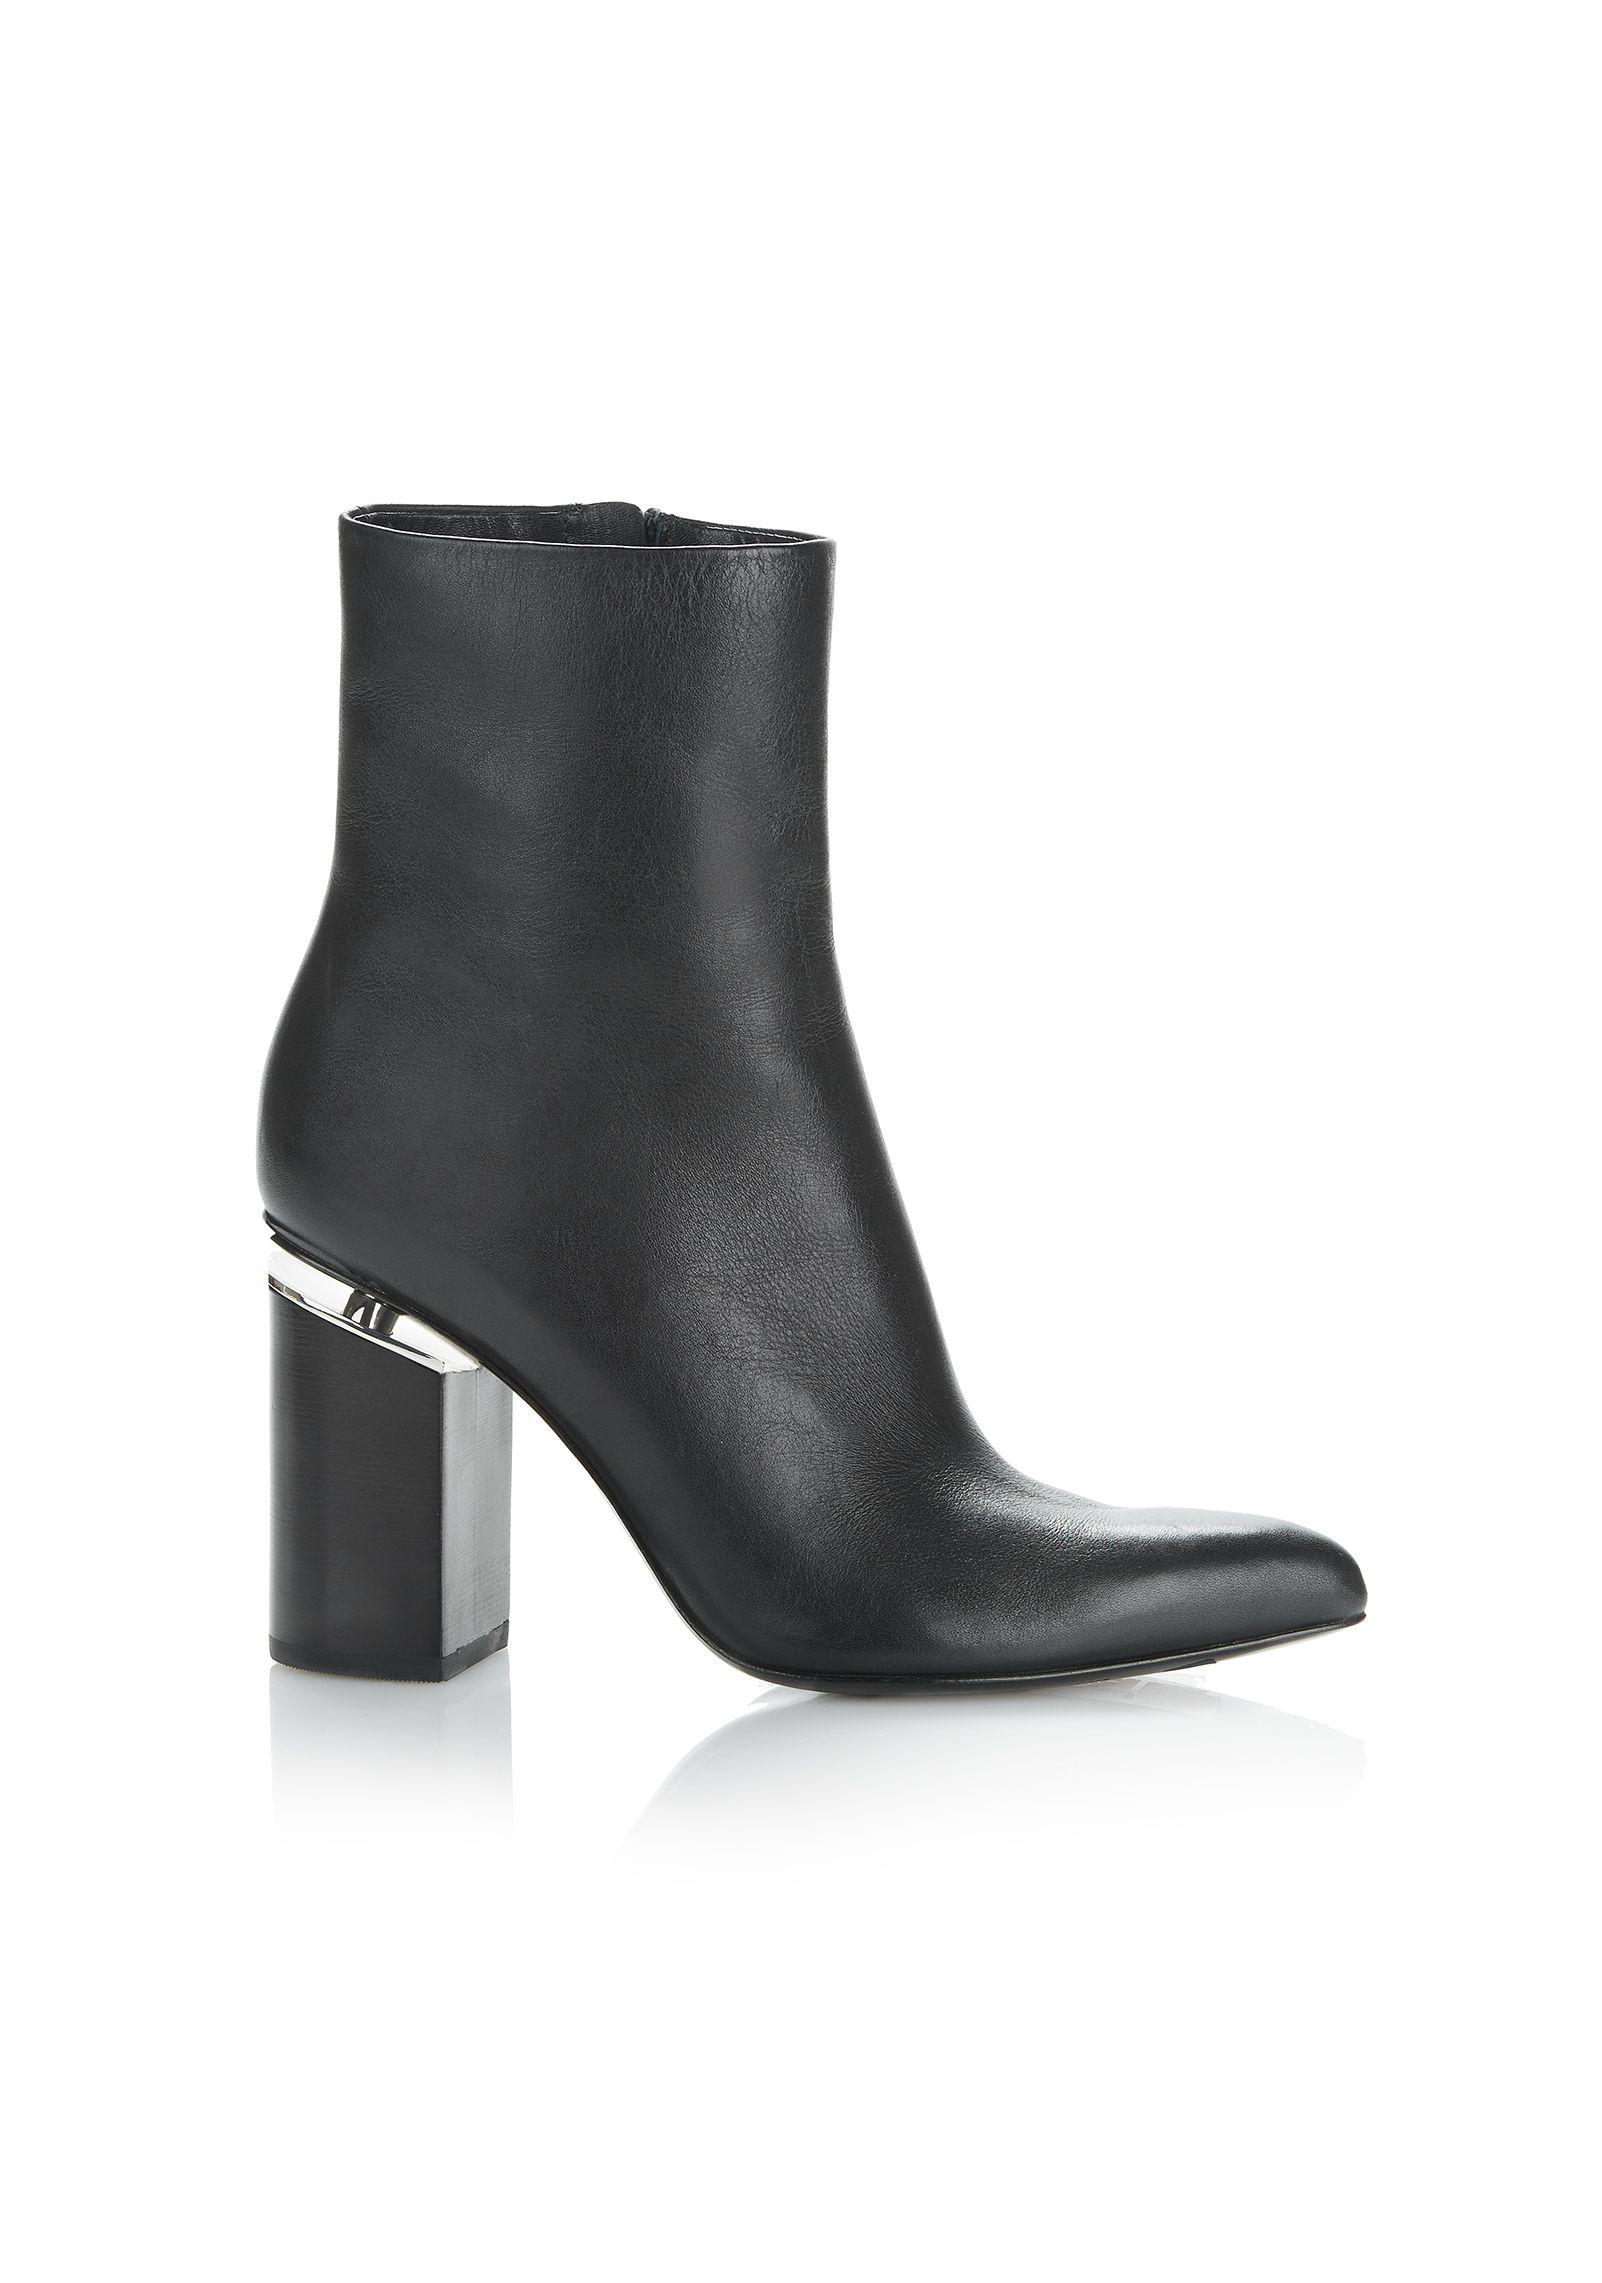 Kirby high heel booties - Black Alexander Wang Ko1ju2ny6Y